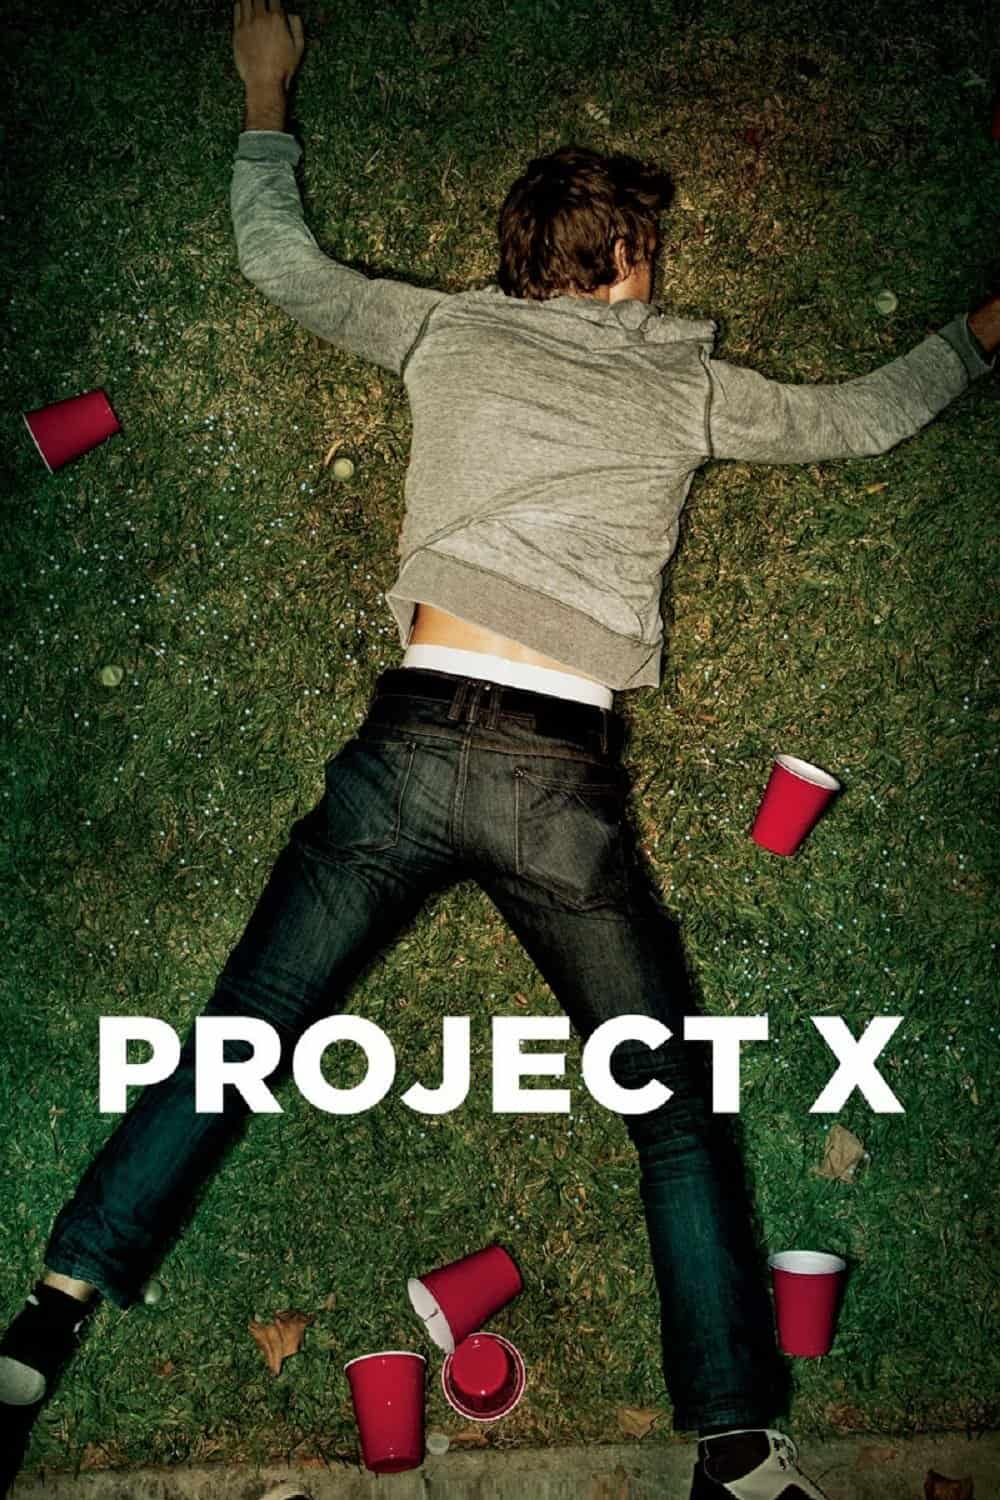 Project X, 2012